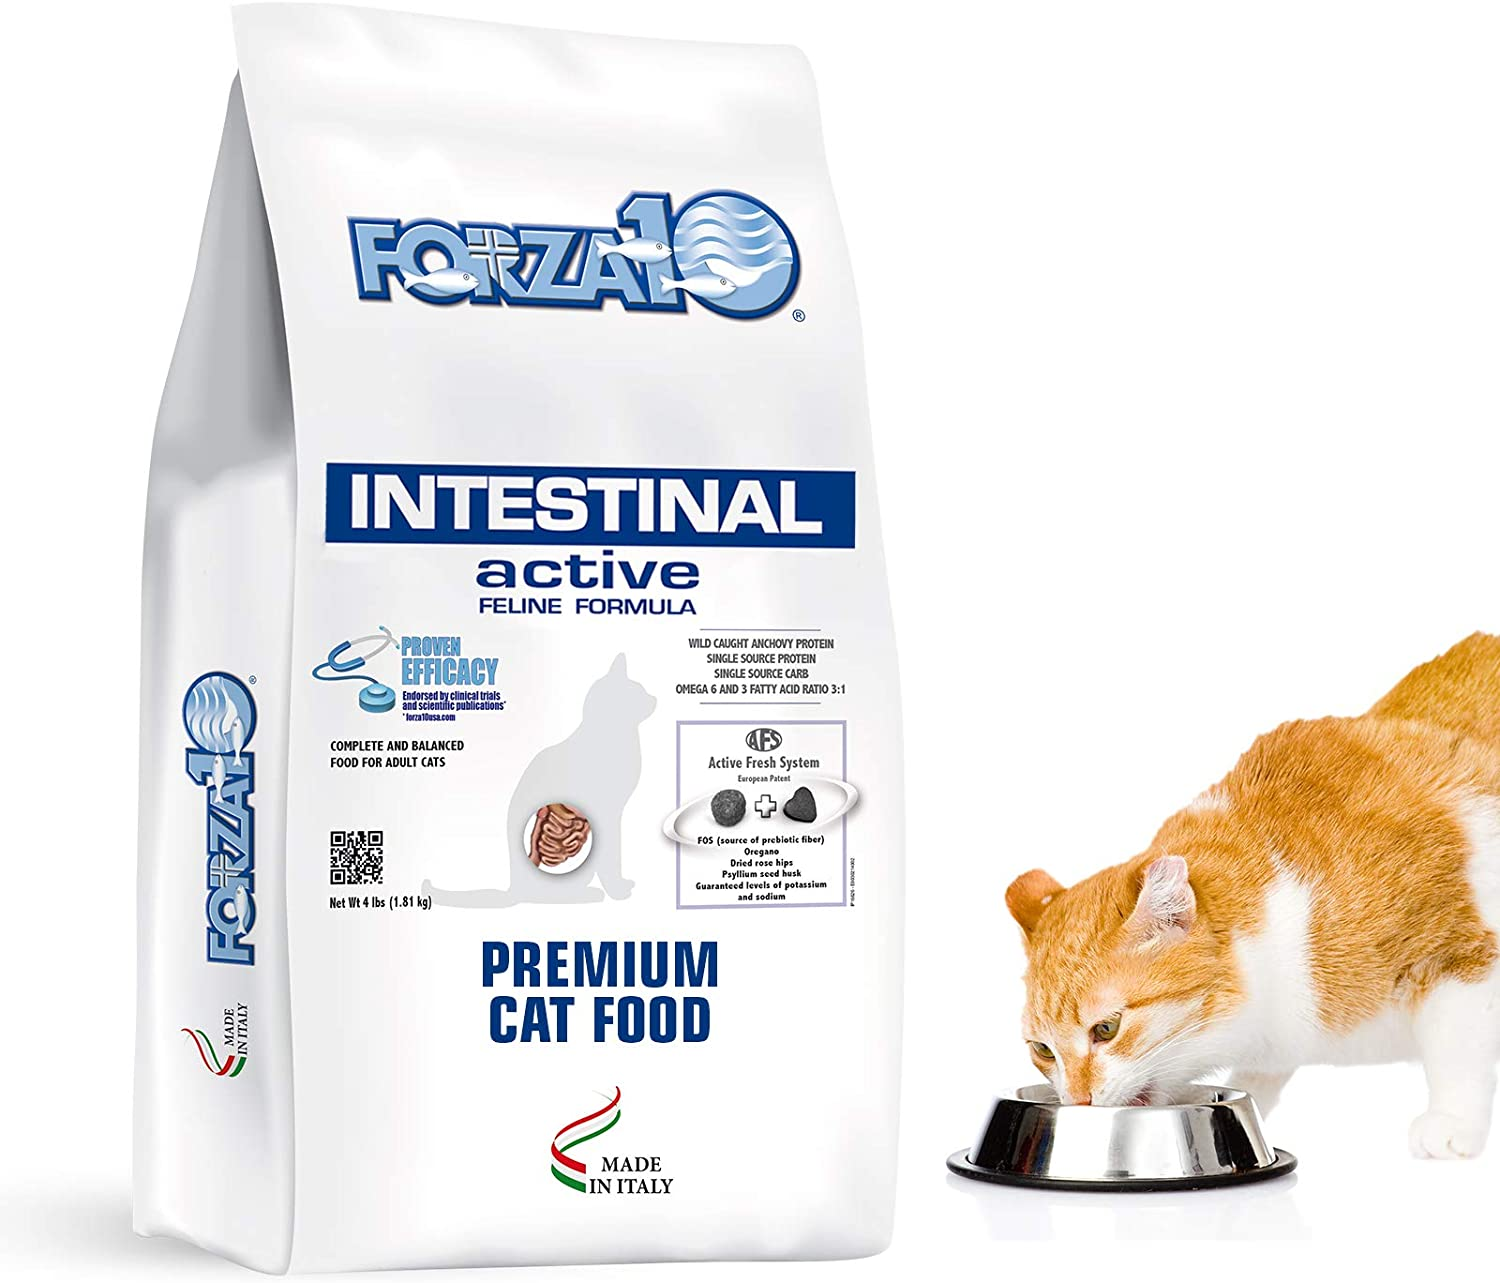 Forza10 Active Intestinal Support Diet Dry Cat Food for Adult Cats, Cat Food Dry for Upset Stomach, Diarrhea and Intestinal Disorders, Wild Caught Anchovy Flavor